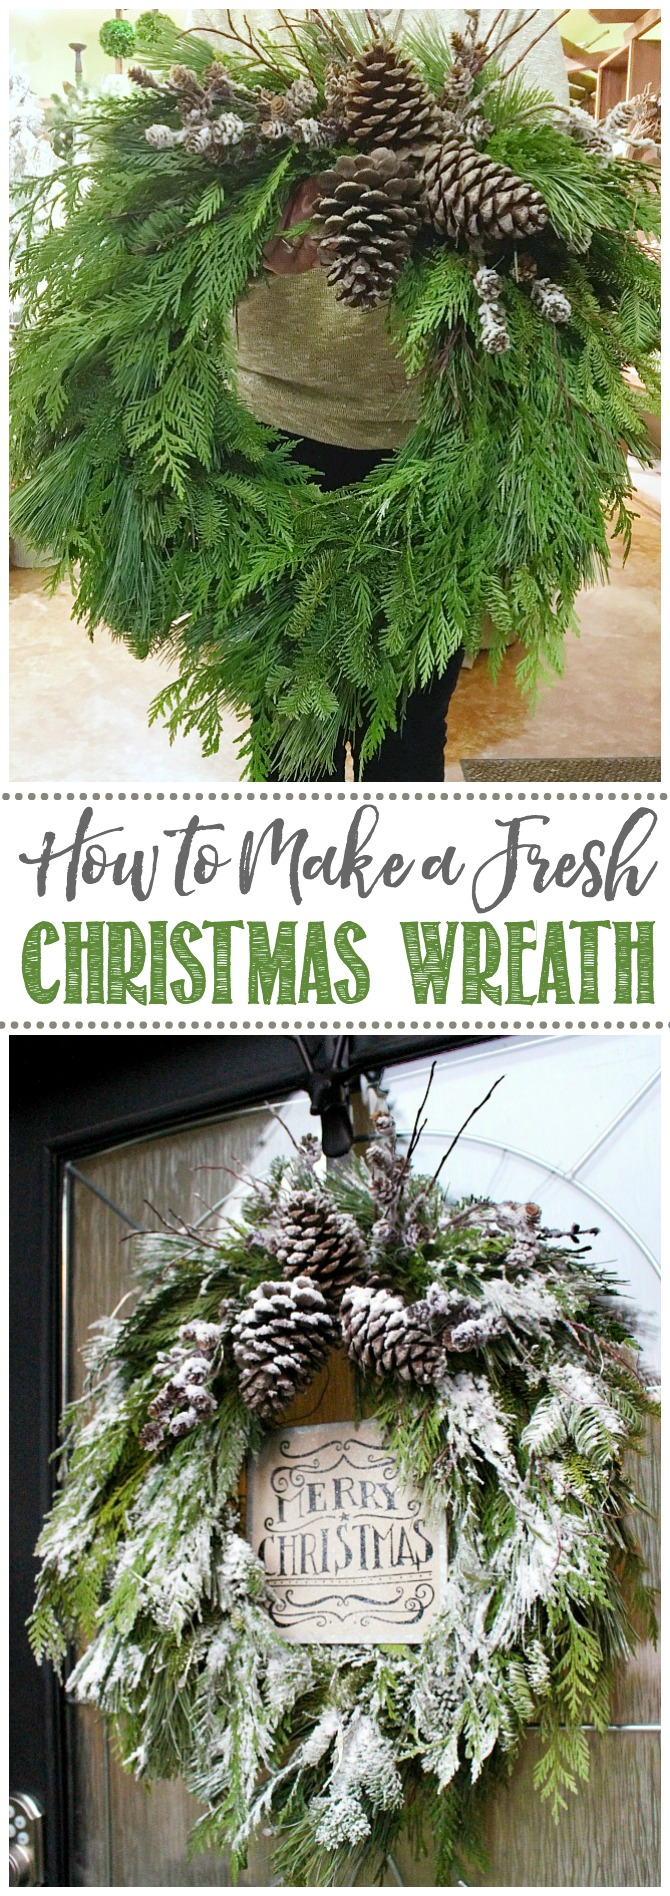 Easy tutorial on how to make a real Christmas wreath using fresh greenery. So pretty for your front porch or Christmas decor! #christmaswreath #freshgreenery #christmasdecorating #christmasdecor #christmasfrontporch